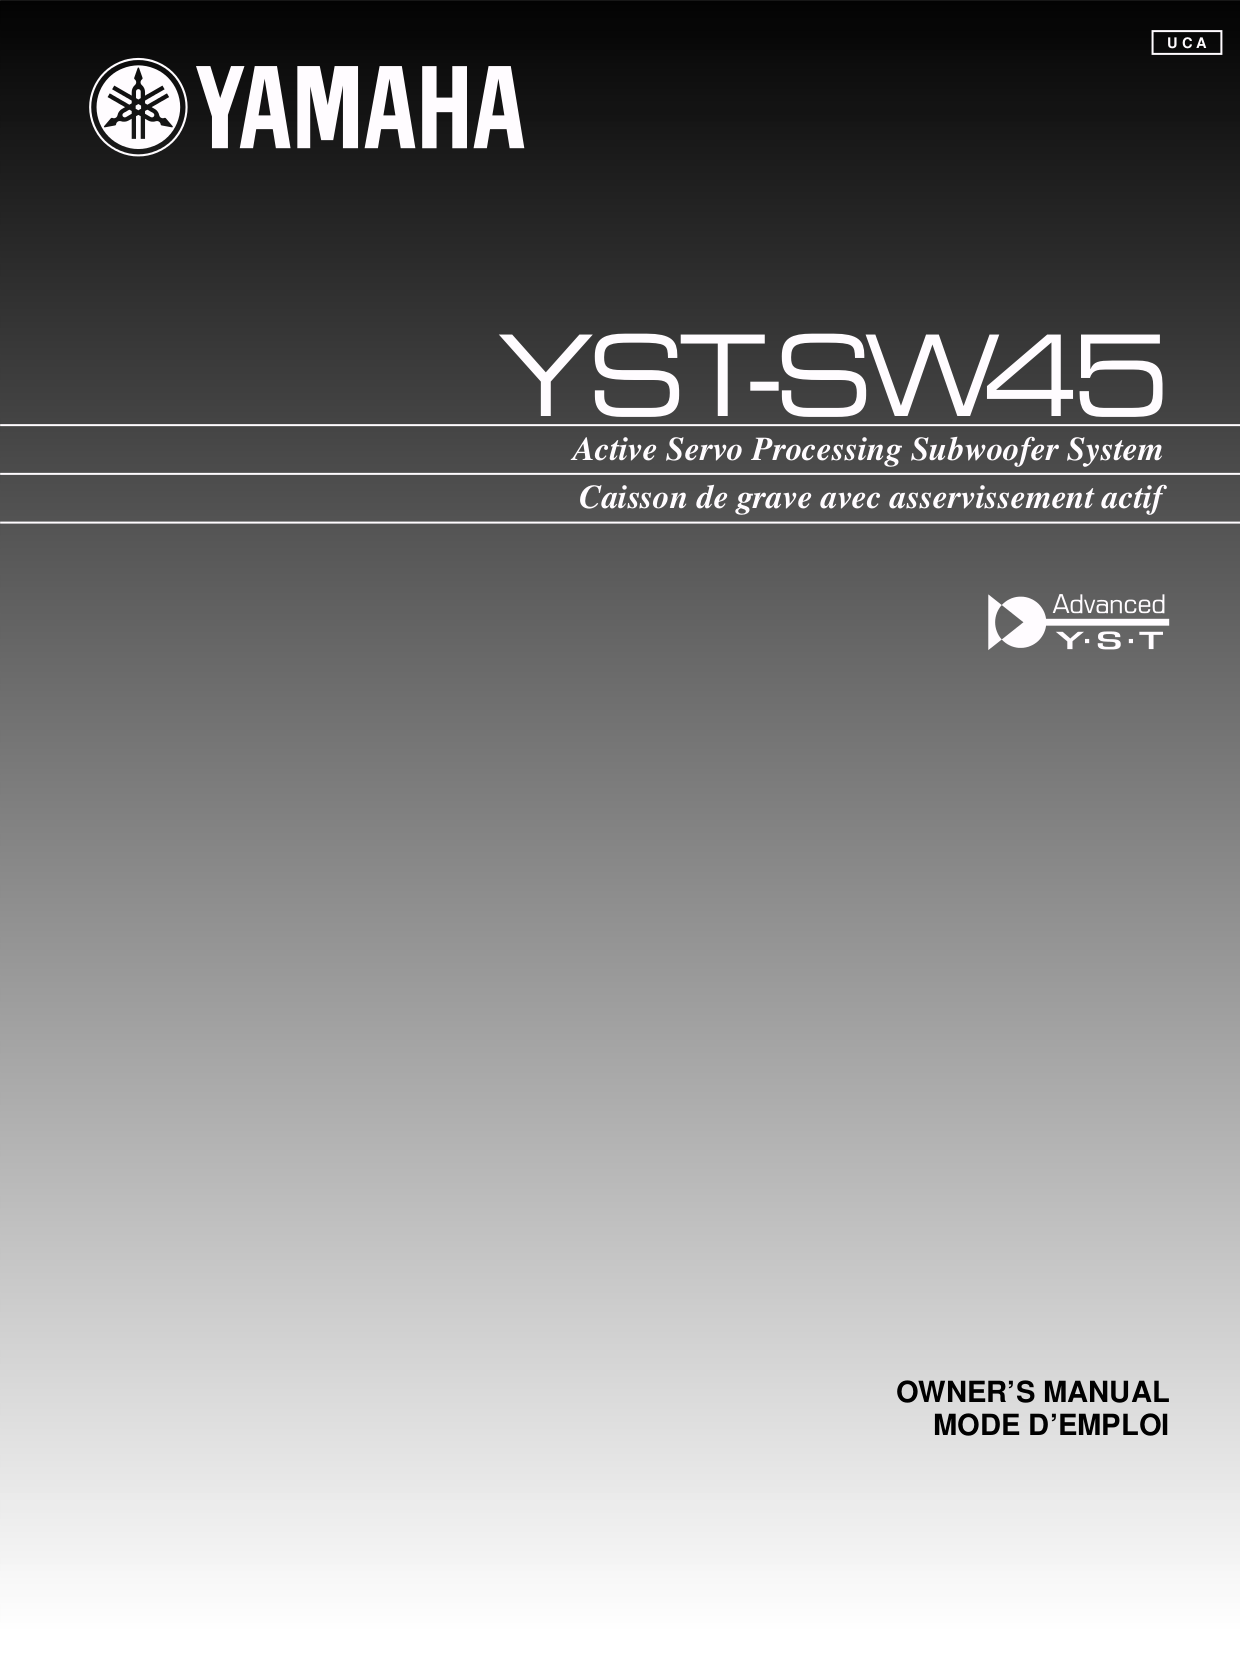 pdf for Yamaha Subwoofer YST-SW45 manual